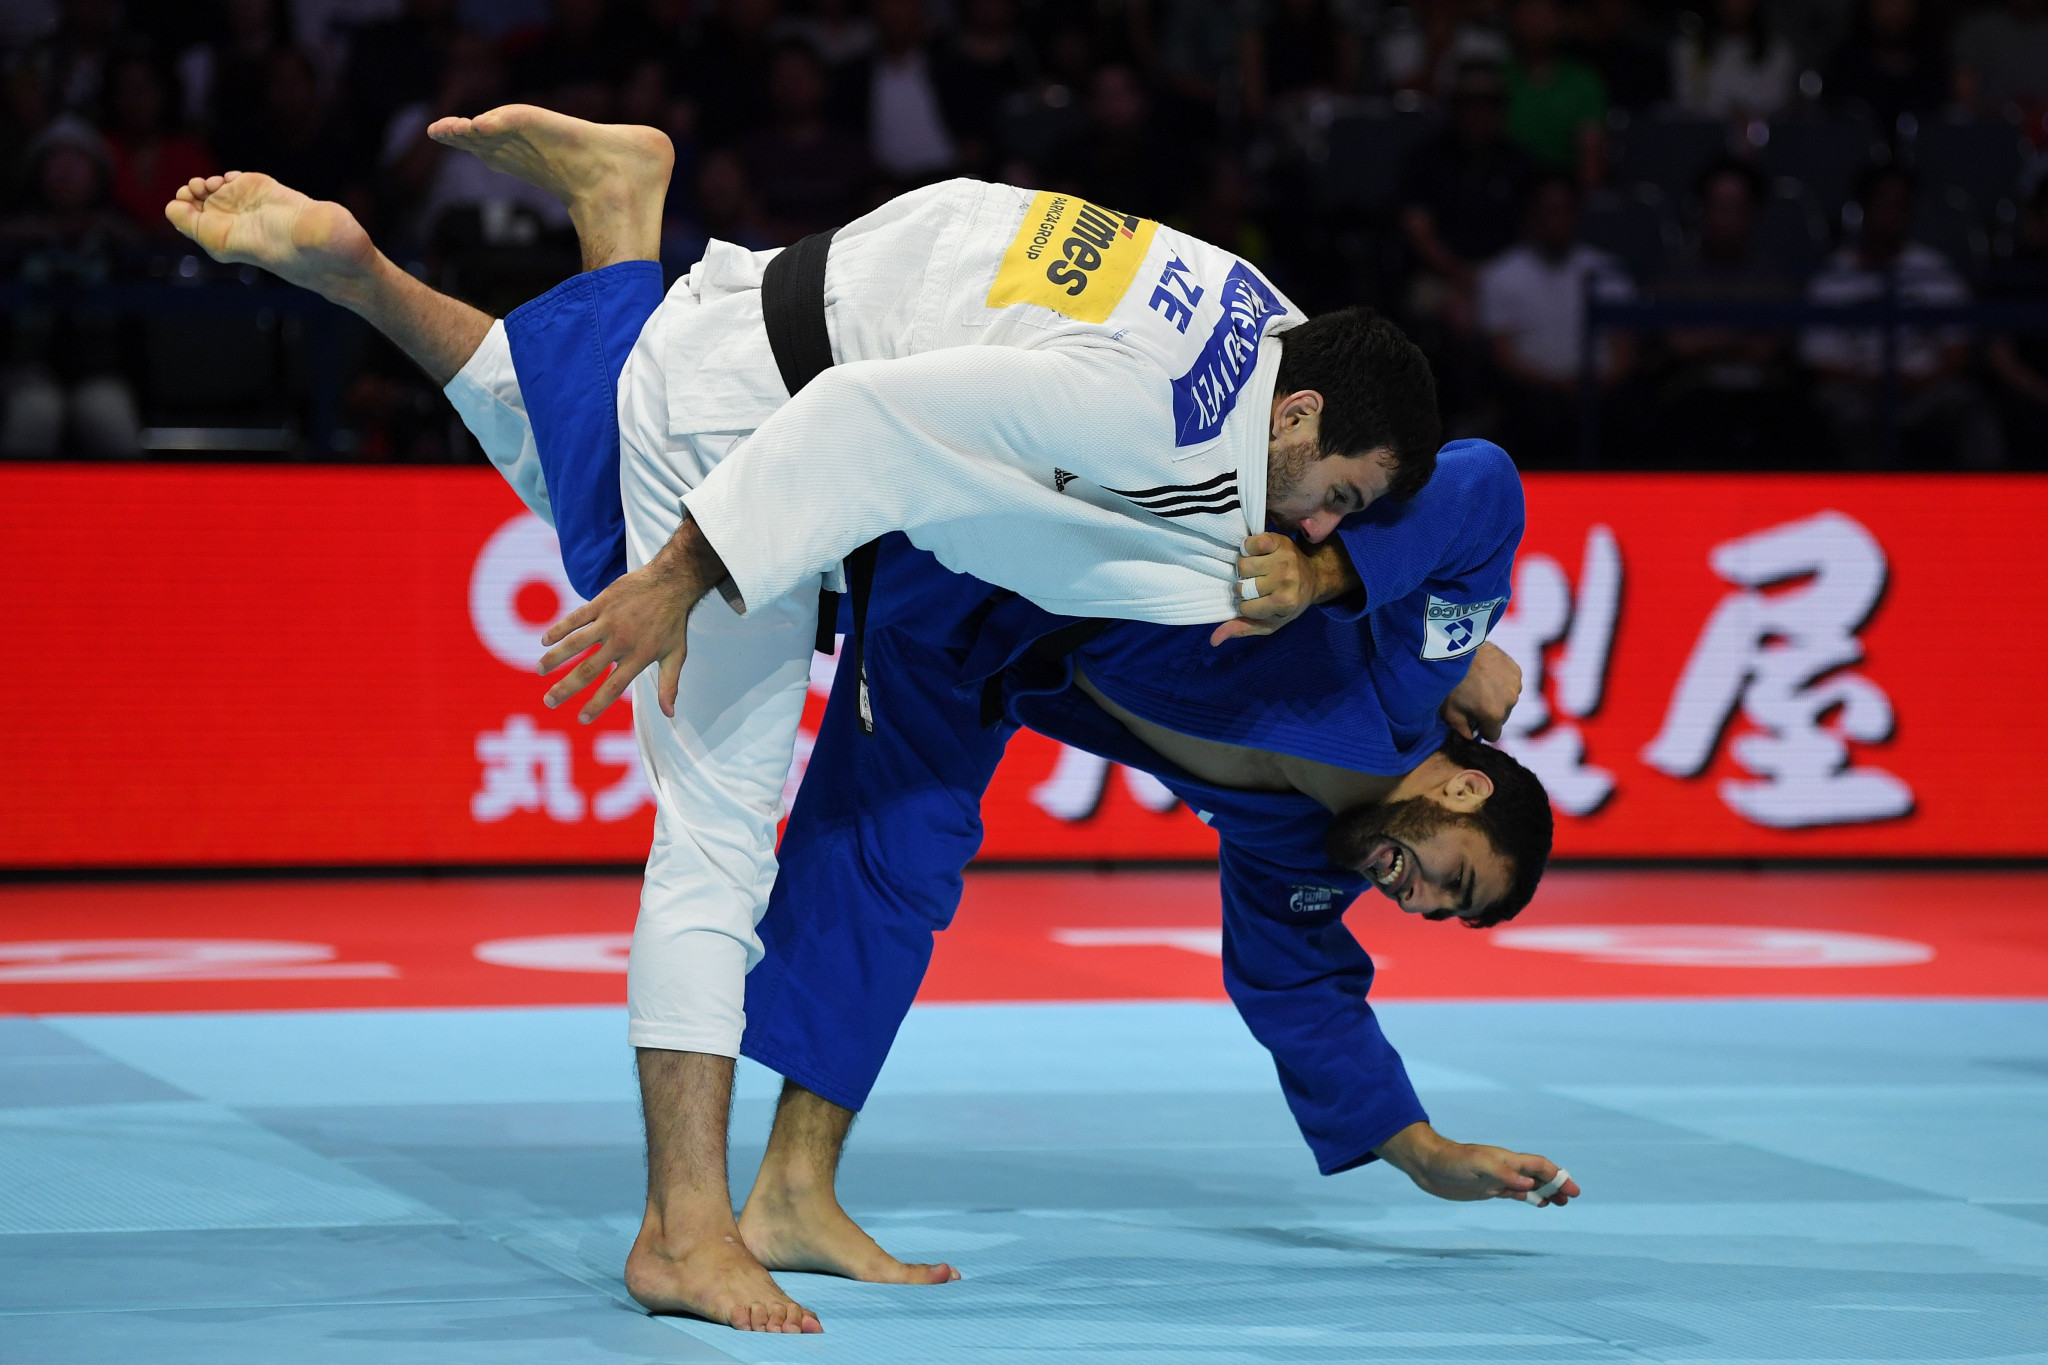 IJF suspend Throw to Tokyo competition following Olympic postponement